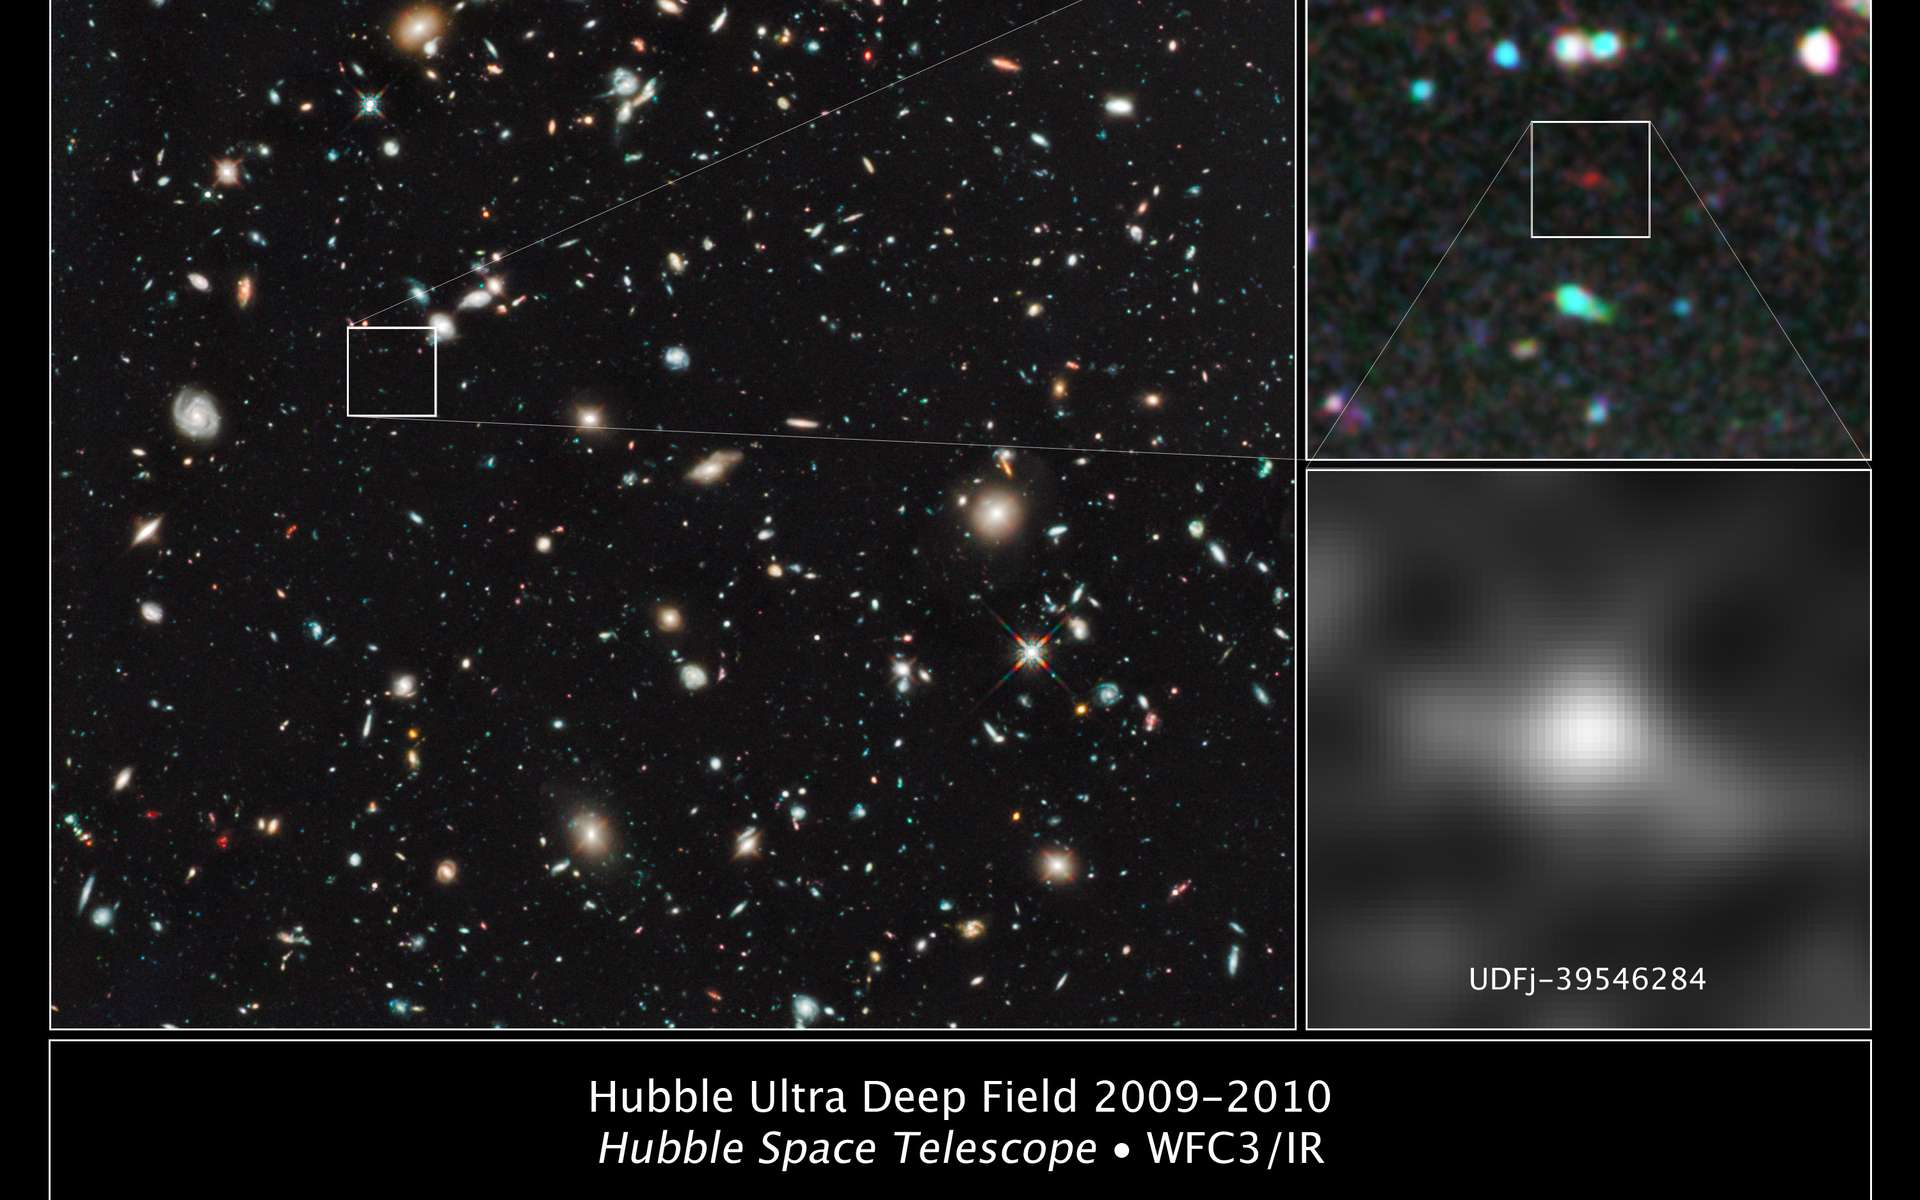 La galaxie repérée sur le champ ultraprofond de Hubble (Hubble Ultra Deep Field, HUDF)© Nasa, Esa, G. Illingworth (University of California, Santa Cruz), R. Bouwens (University of California, Santa Cruz, Leiden University) / HUDF09 Team